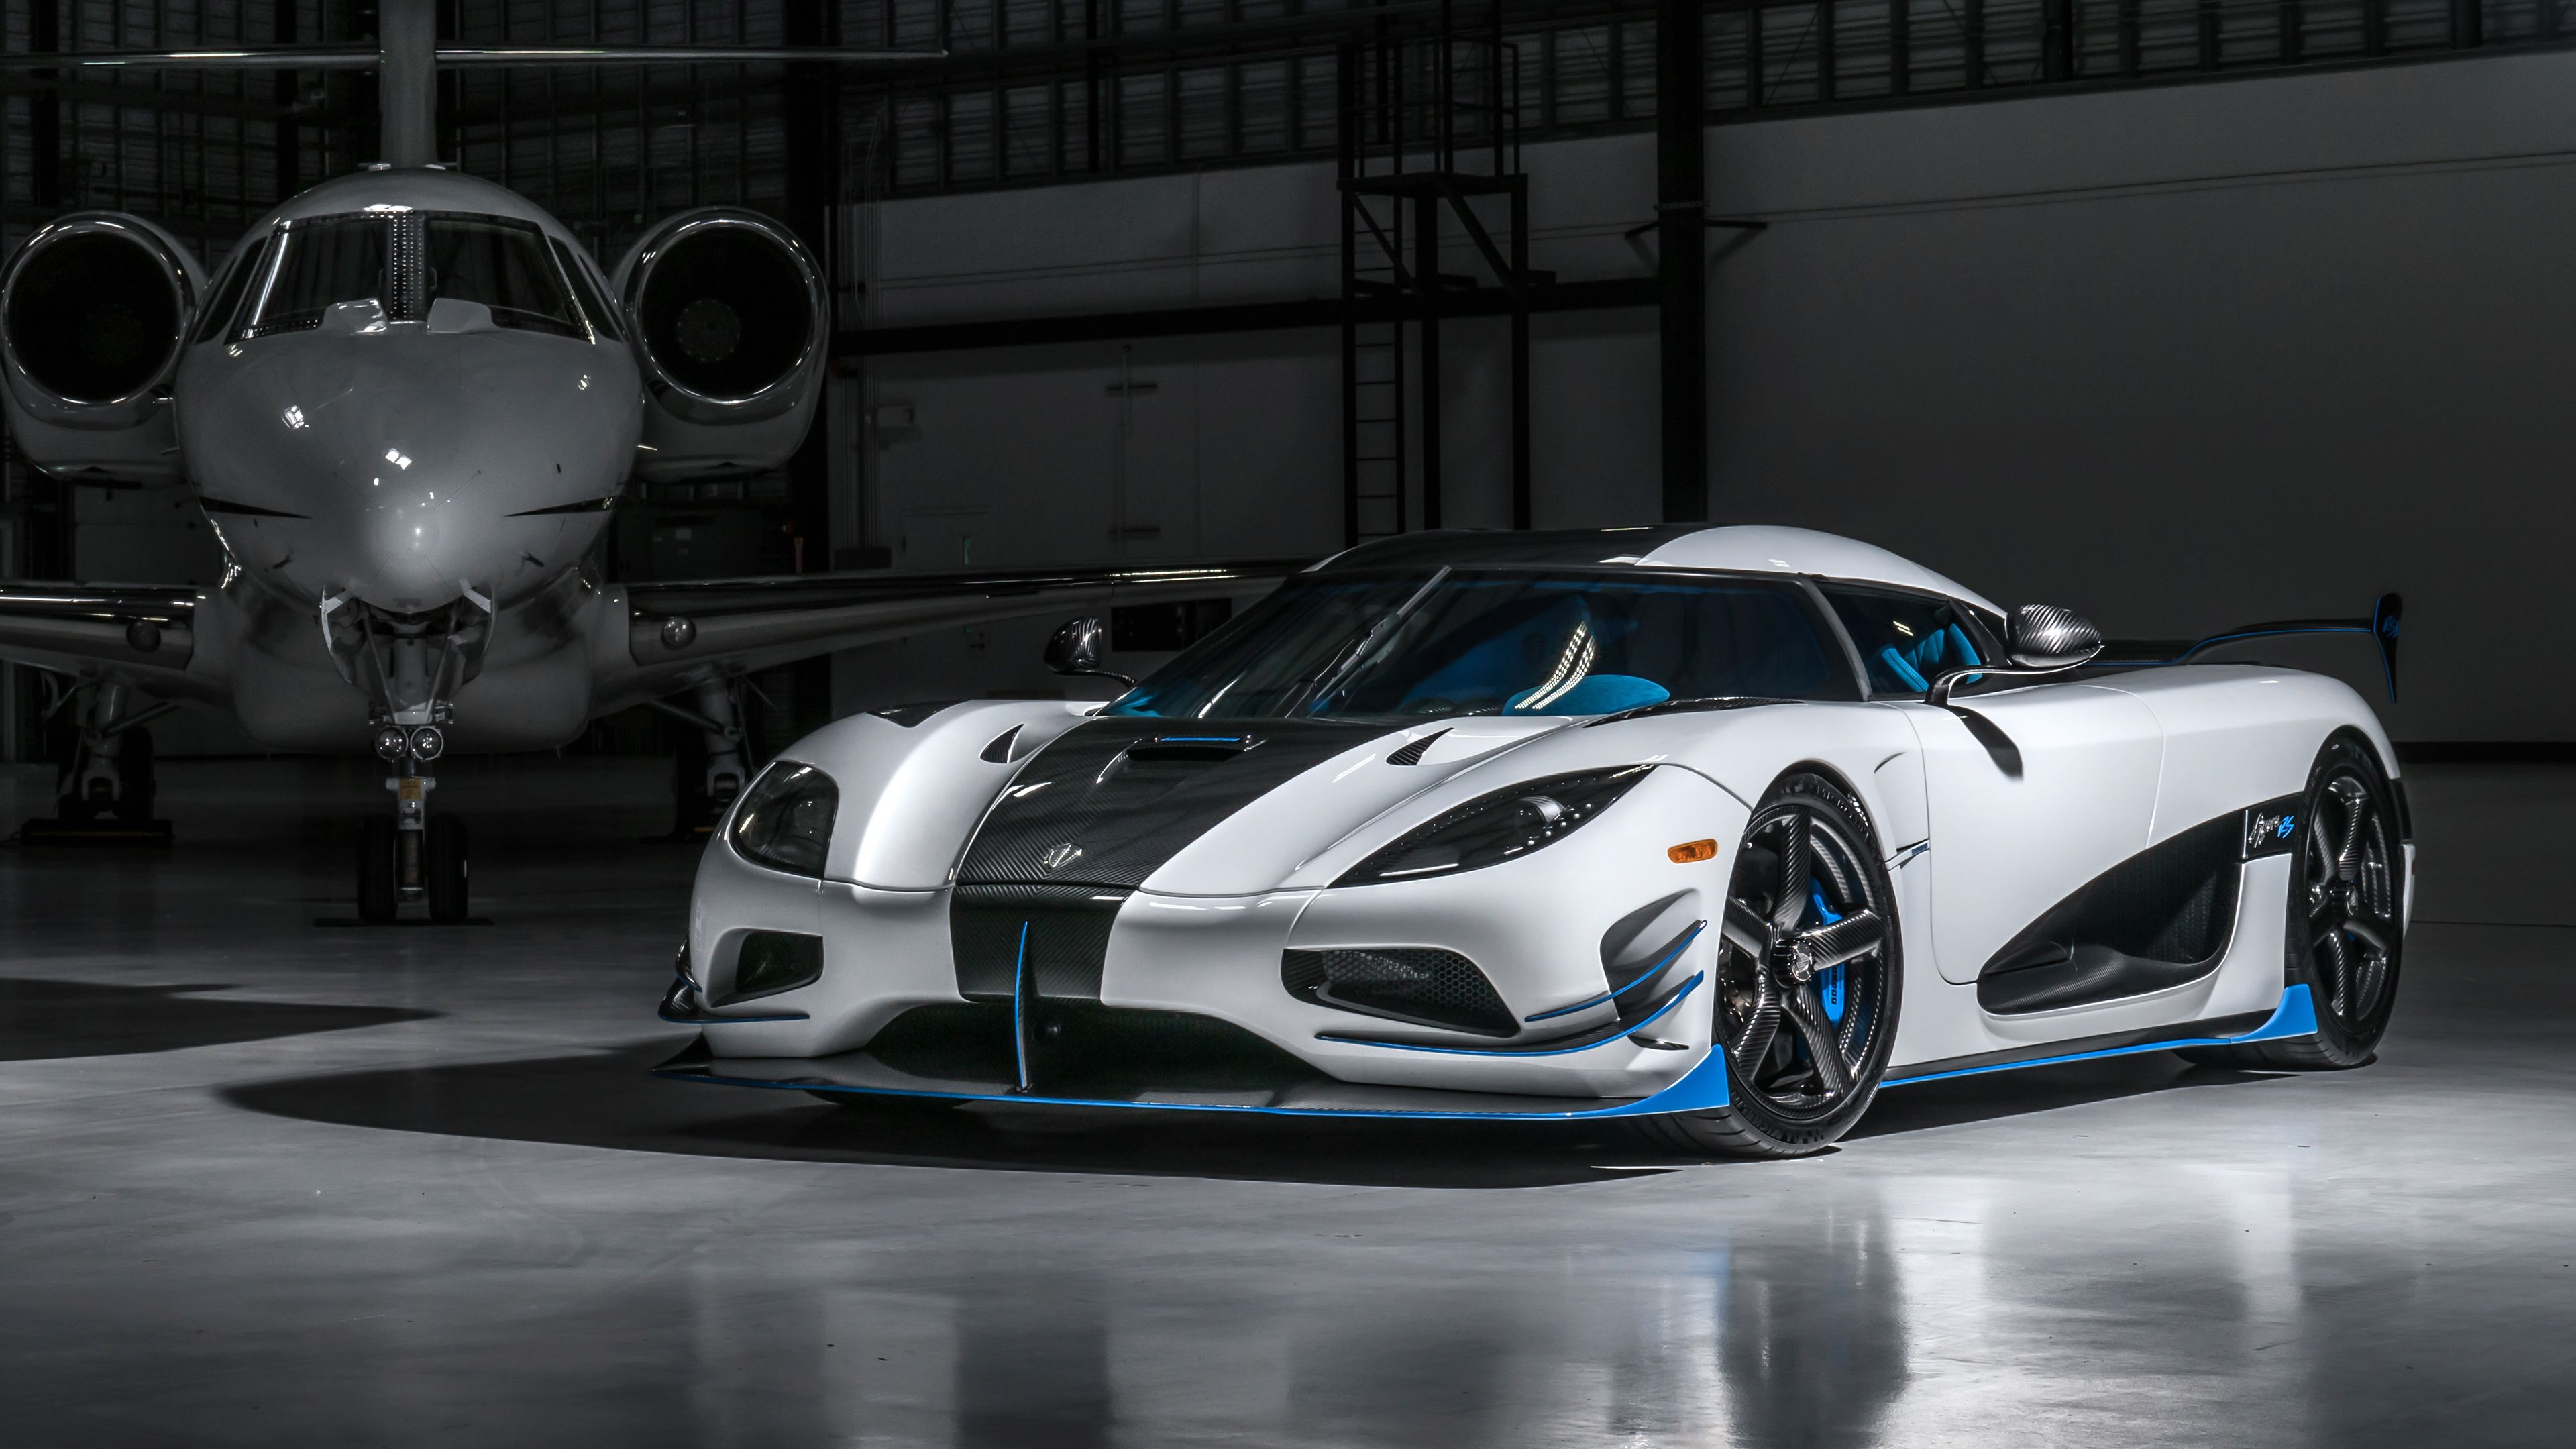 We hope you enjoy our rising collection of girls & 2019 Koenigsegg Agera Rs1 Koenigsegg Agera Wallpapers Hd Wallpapers Cars Wallpapers 4k Wallpapers Car Wallpapers Koenigsegg Bugatti Cars